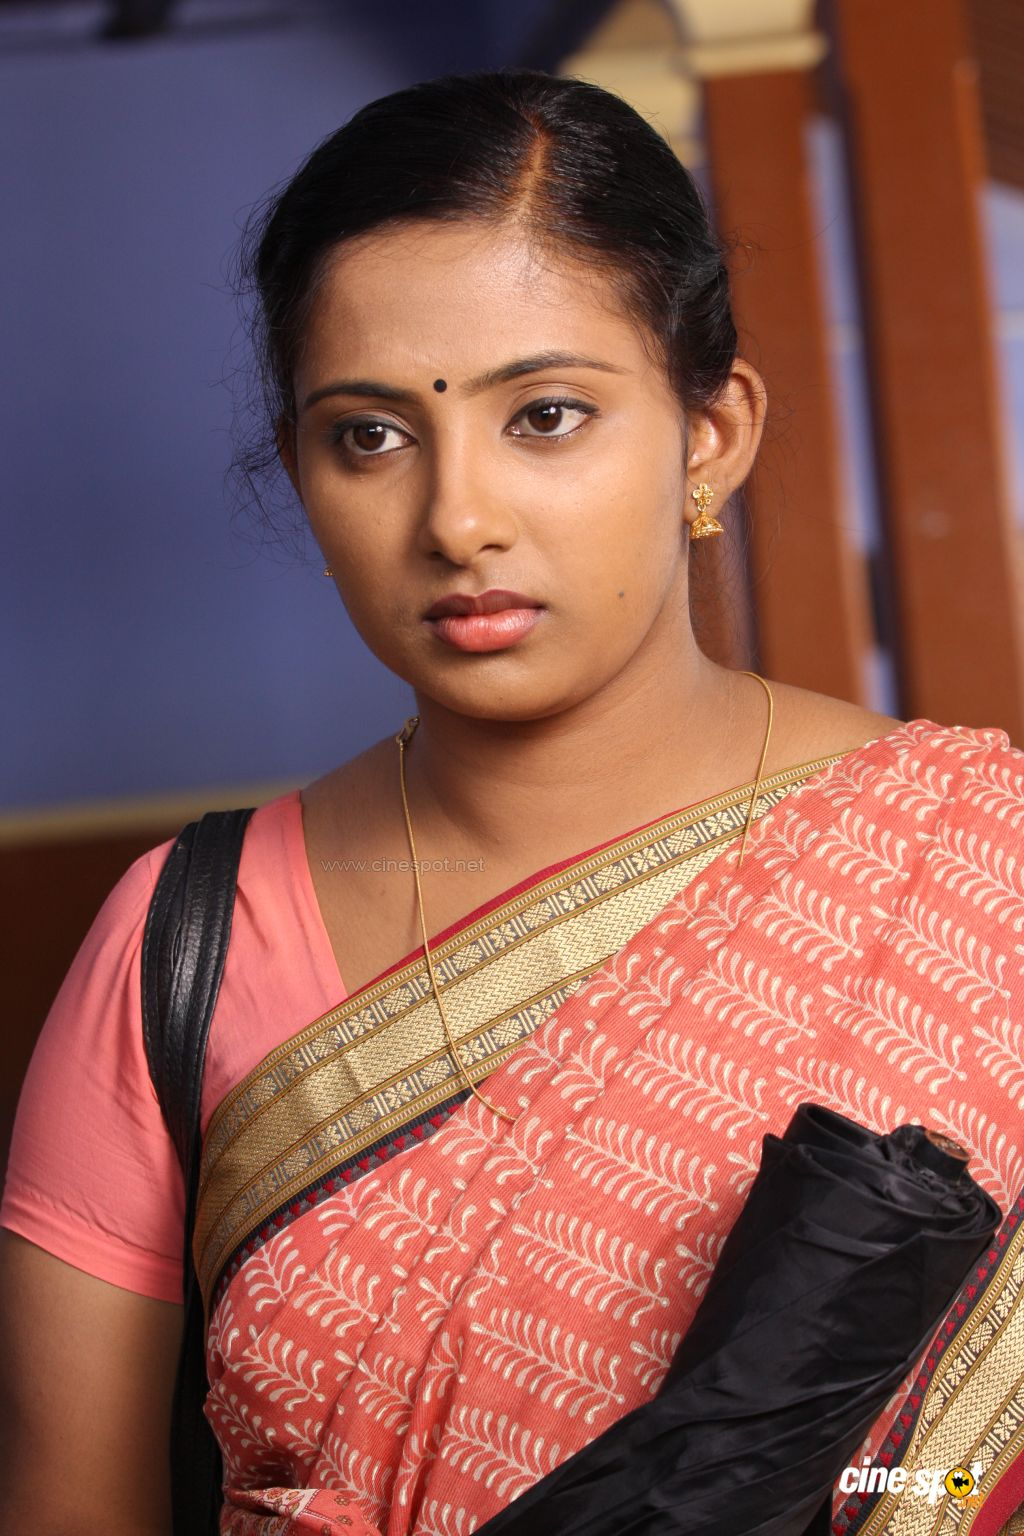 Malayalam Mallu Aunty Photos Pundai Tamil Aunties Pictures -1575